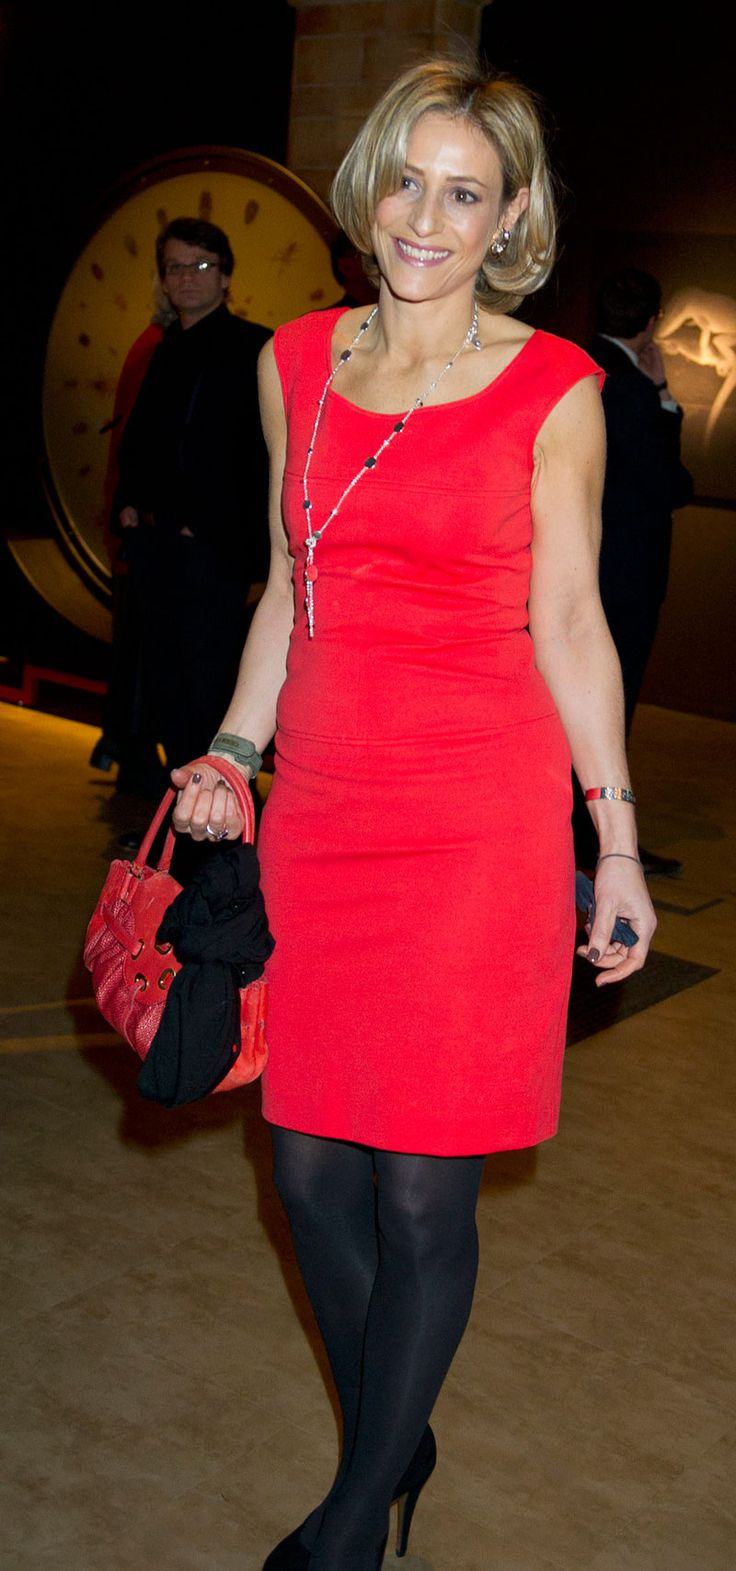 Newsreader Emily Maitlis, the lady in red